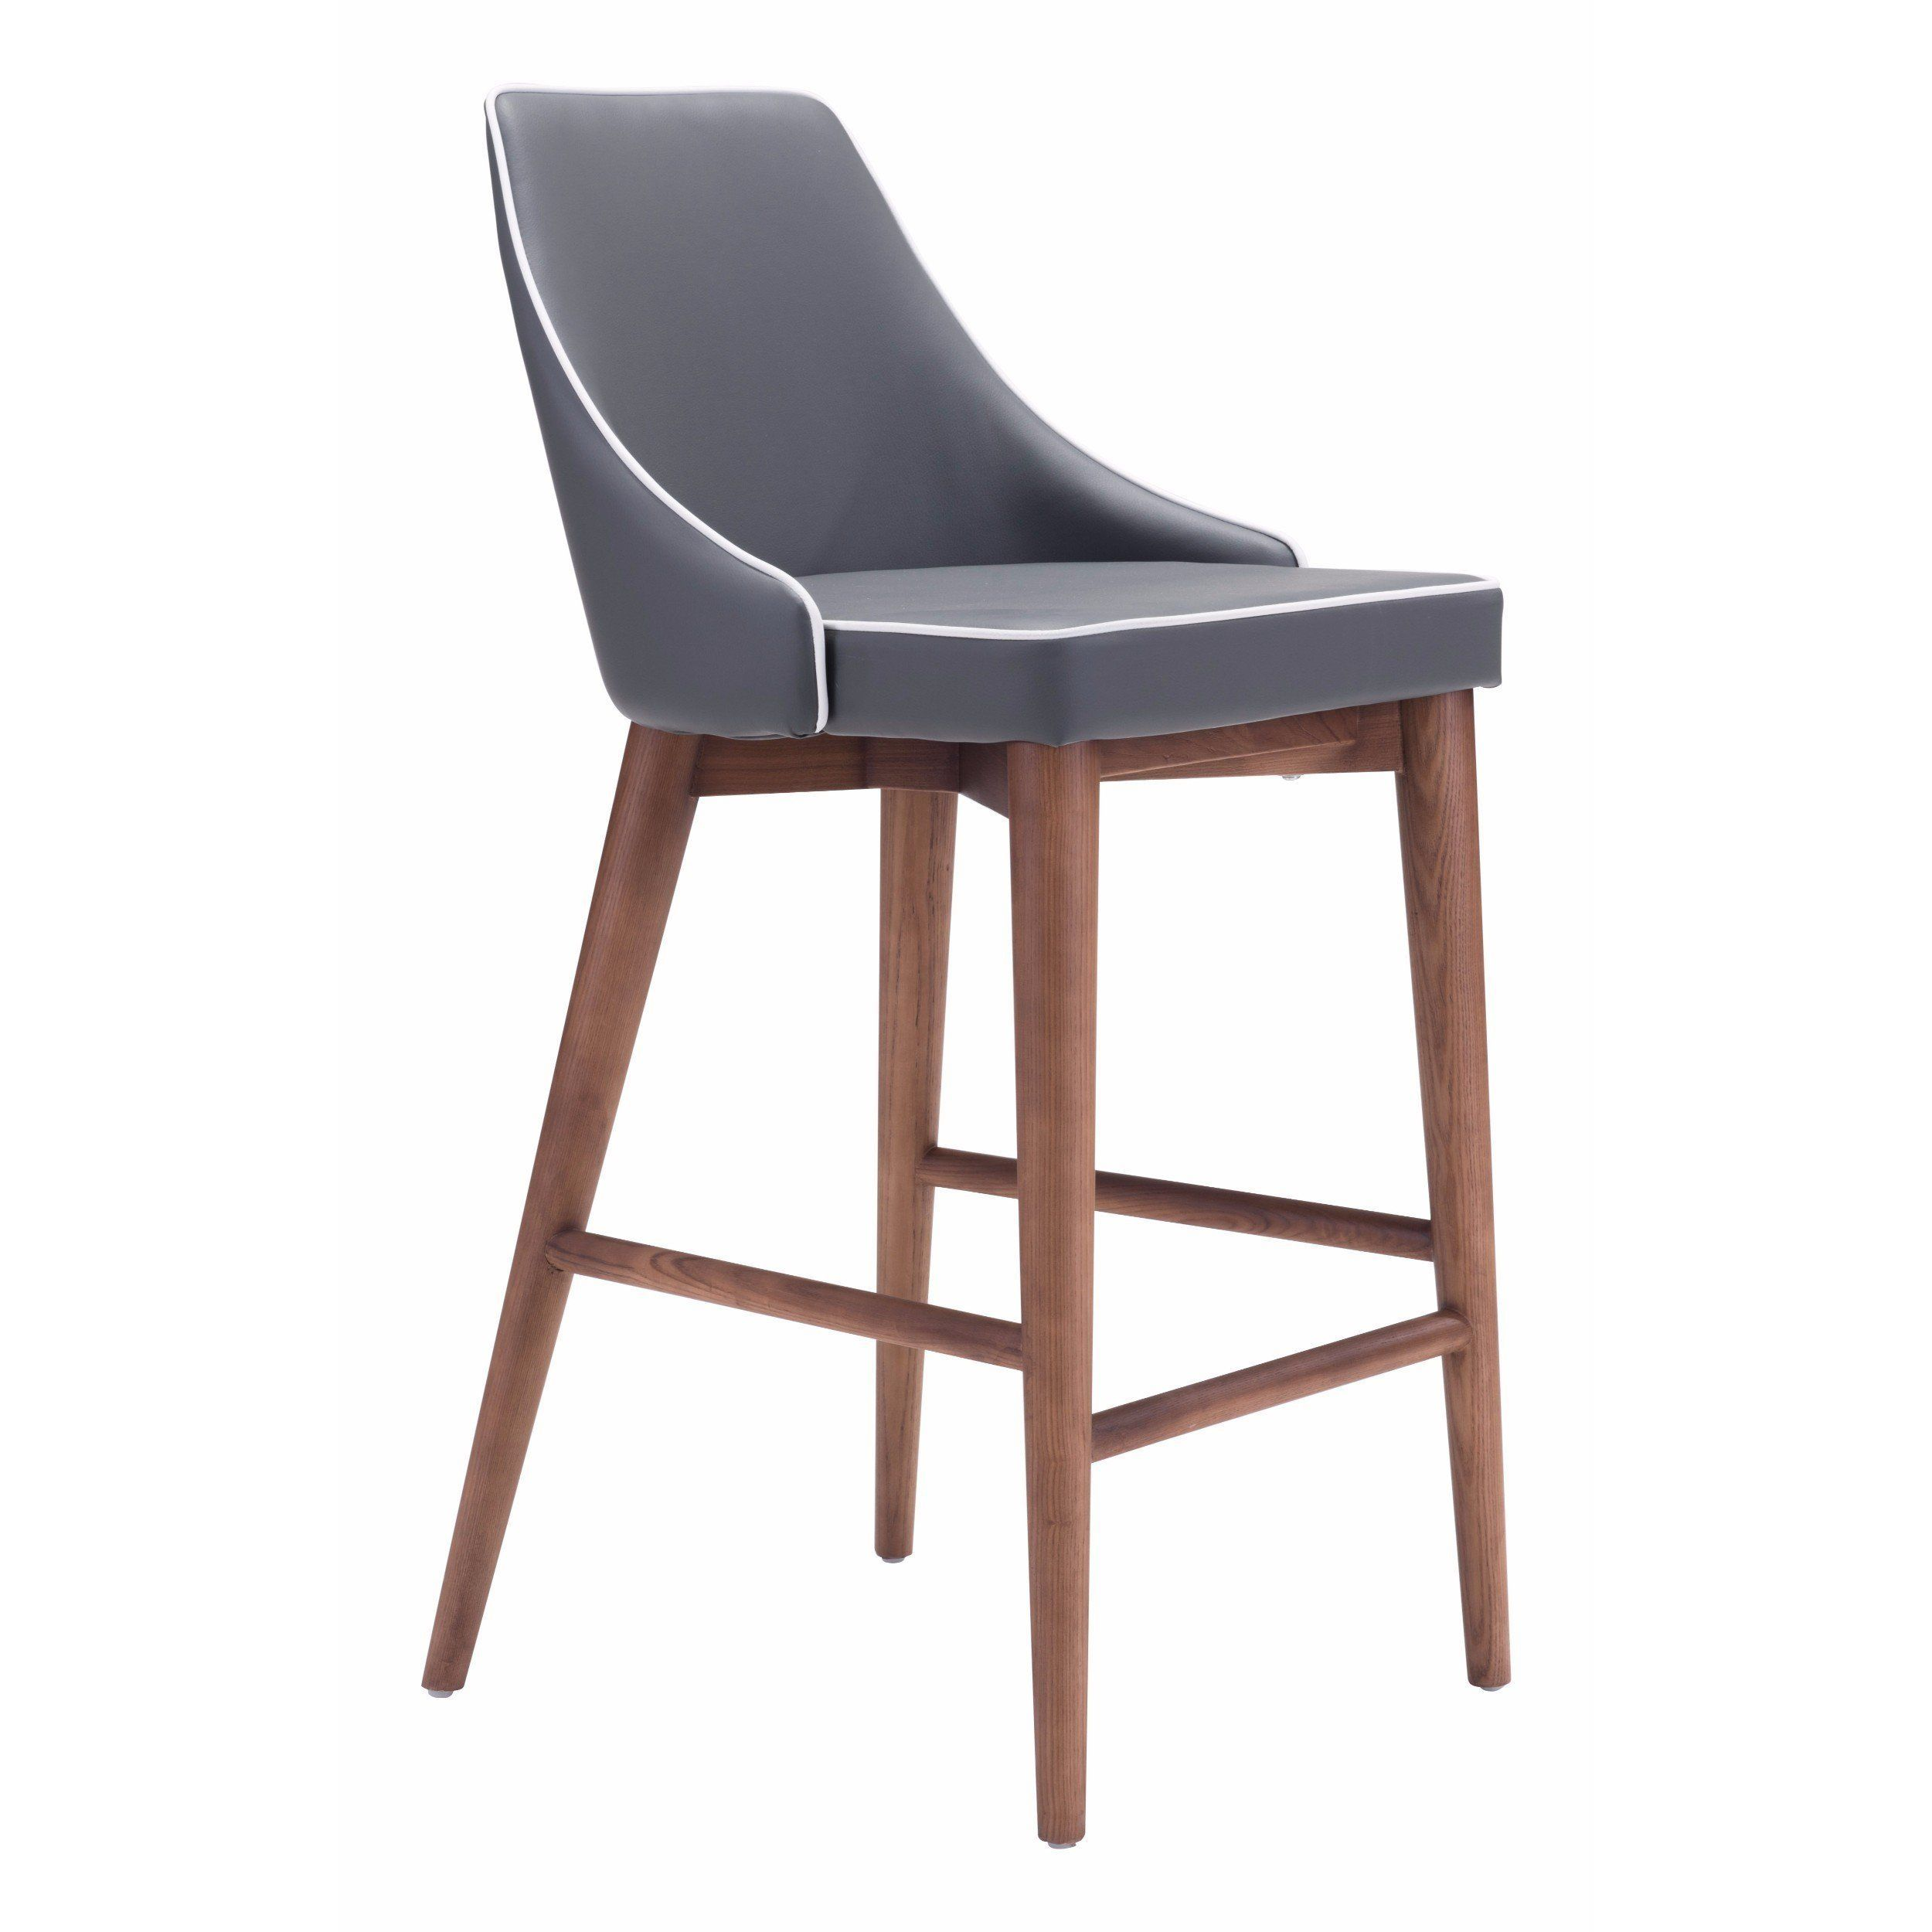 We Offer You 8 Choices Of Bar Chairs For Your Home That